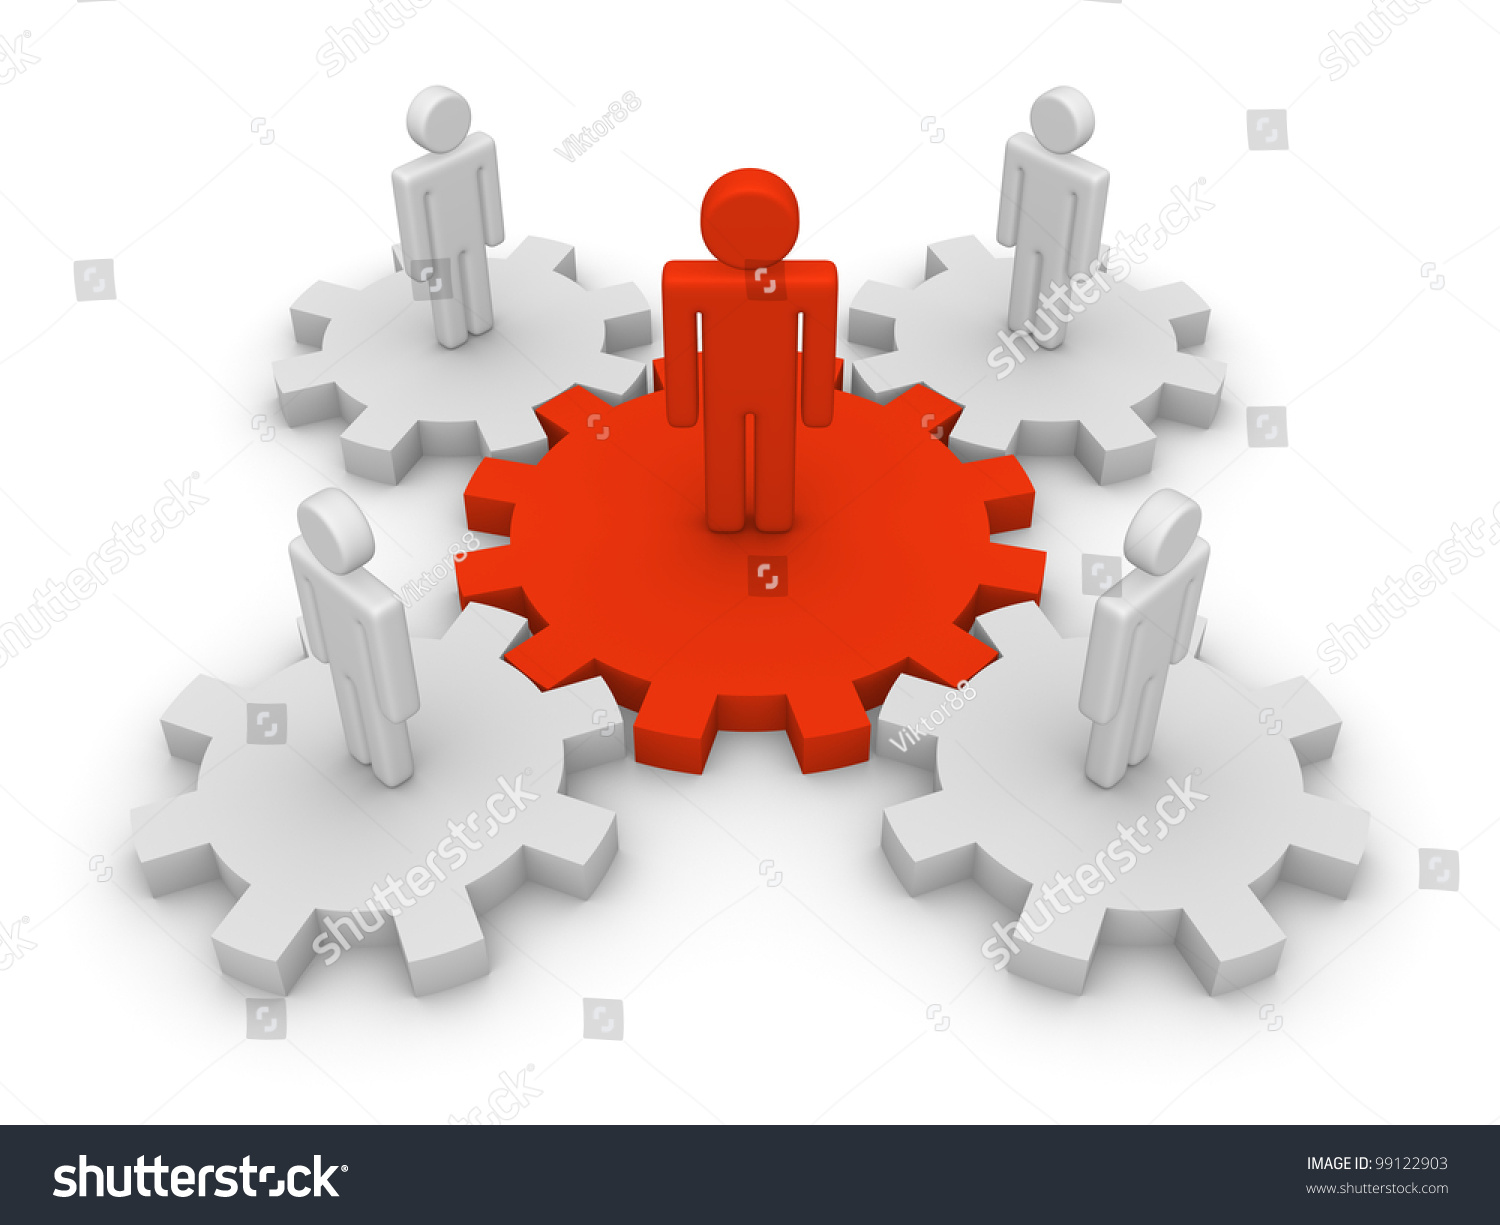 teamwork team leader stock illustration shutterstock teamwork team leader